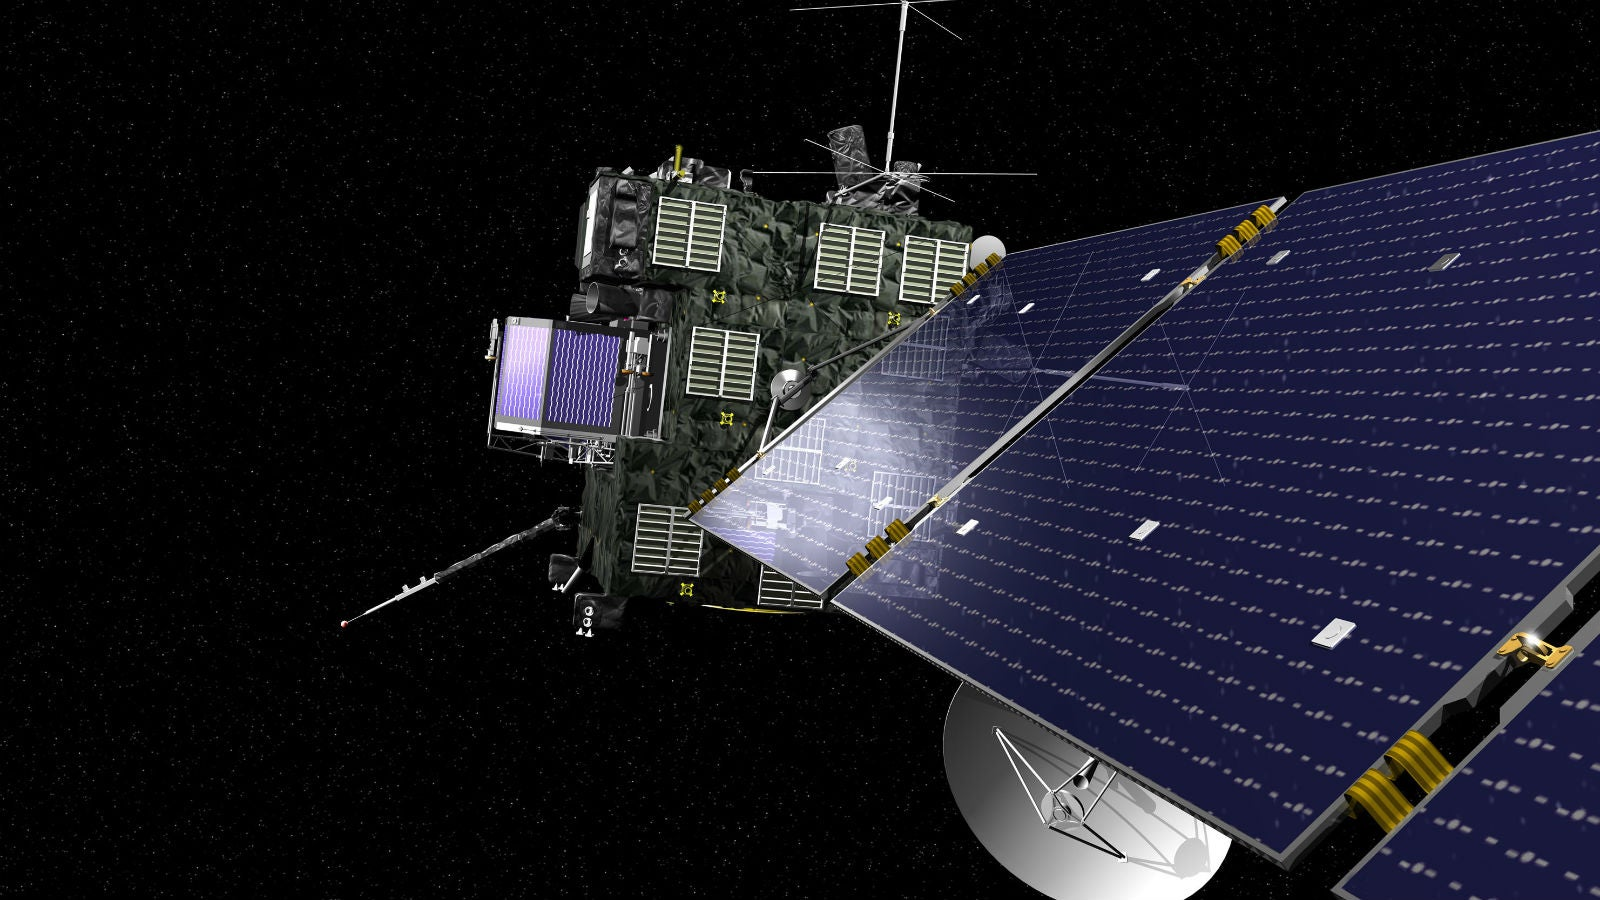 The Rosetta Spacecraft Is About to Intercept a Comet Going Mach 47